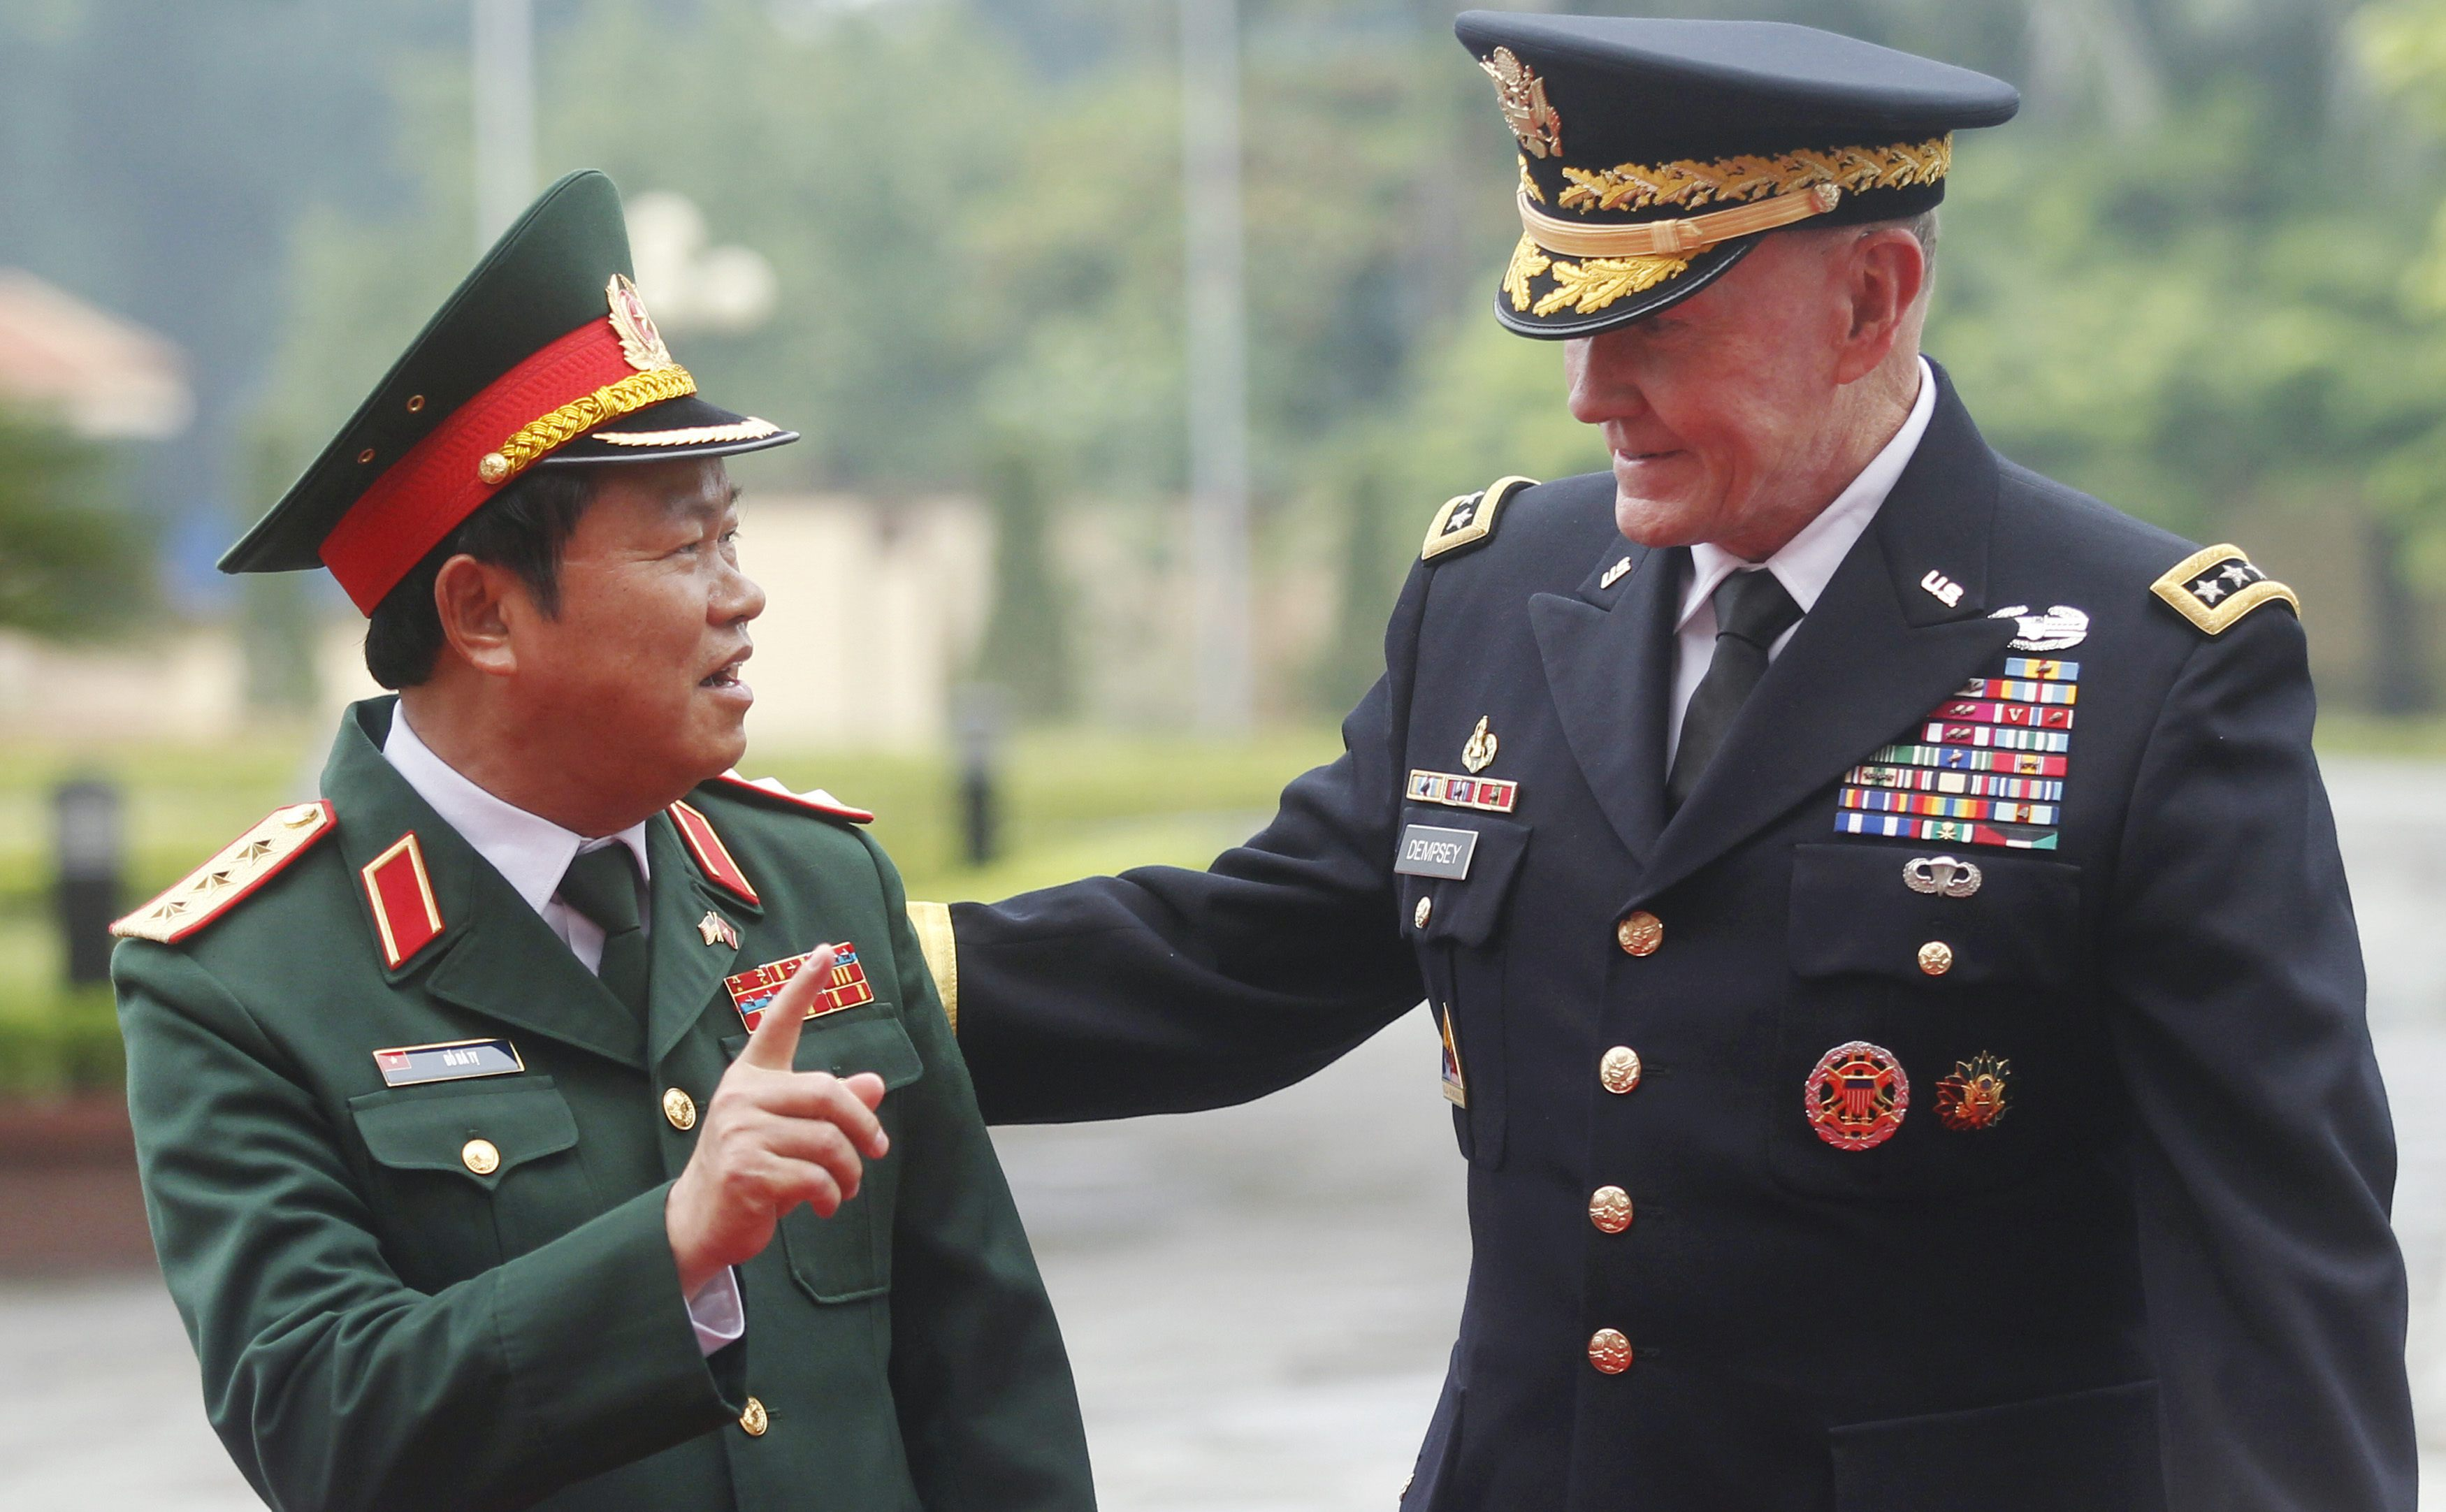 In sultry Vietnam, top US general seeks thaw with former foe